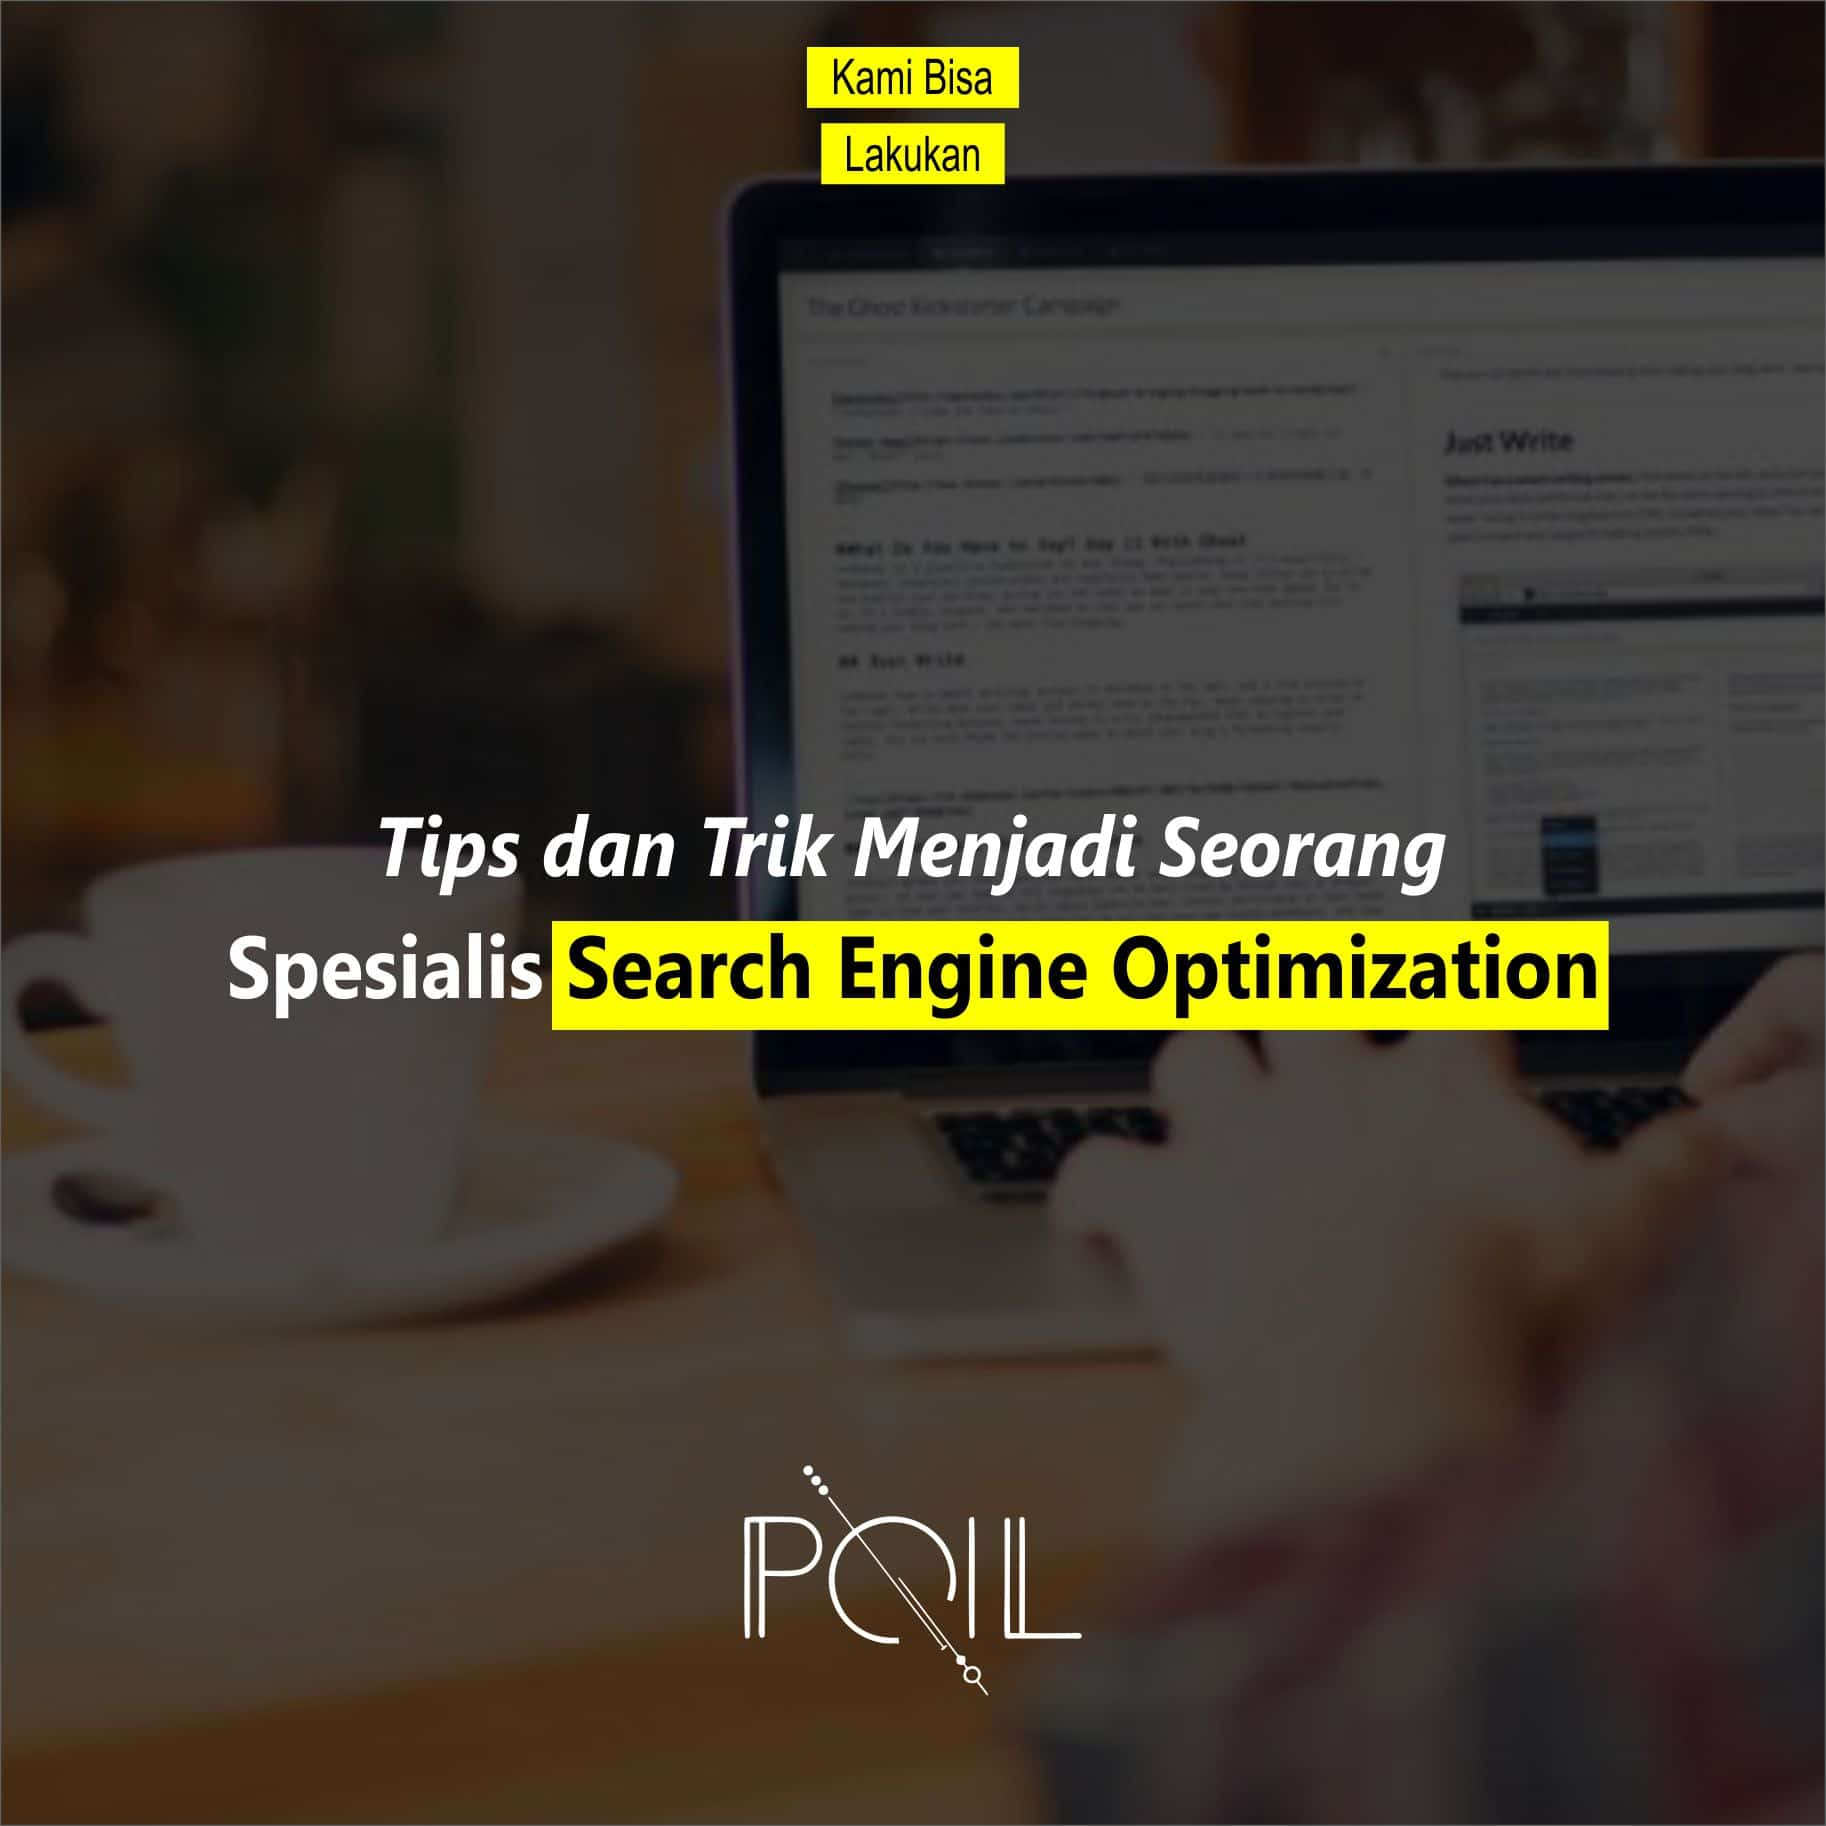 Tips dan Trik Menjadi Seorang Spesialis Search Engine Optimization